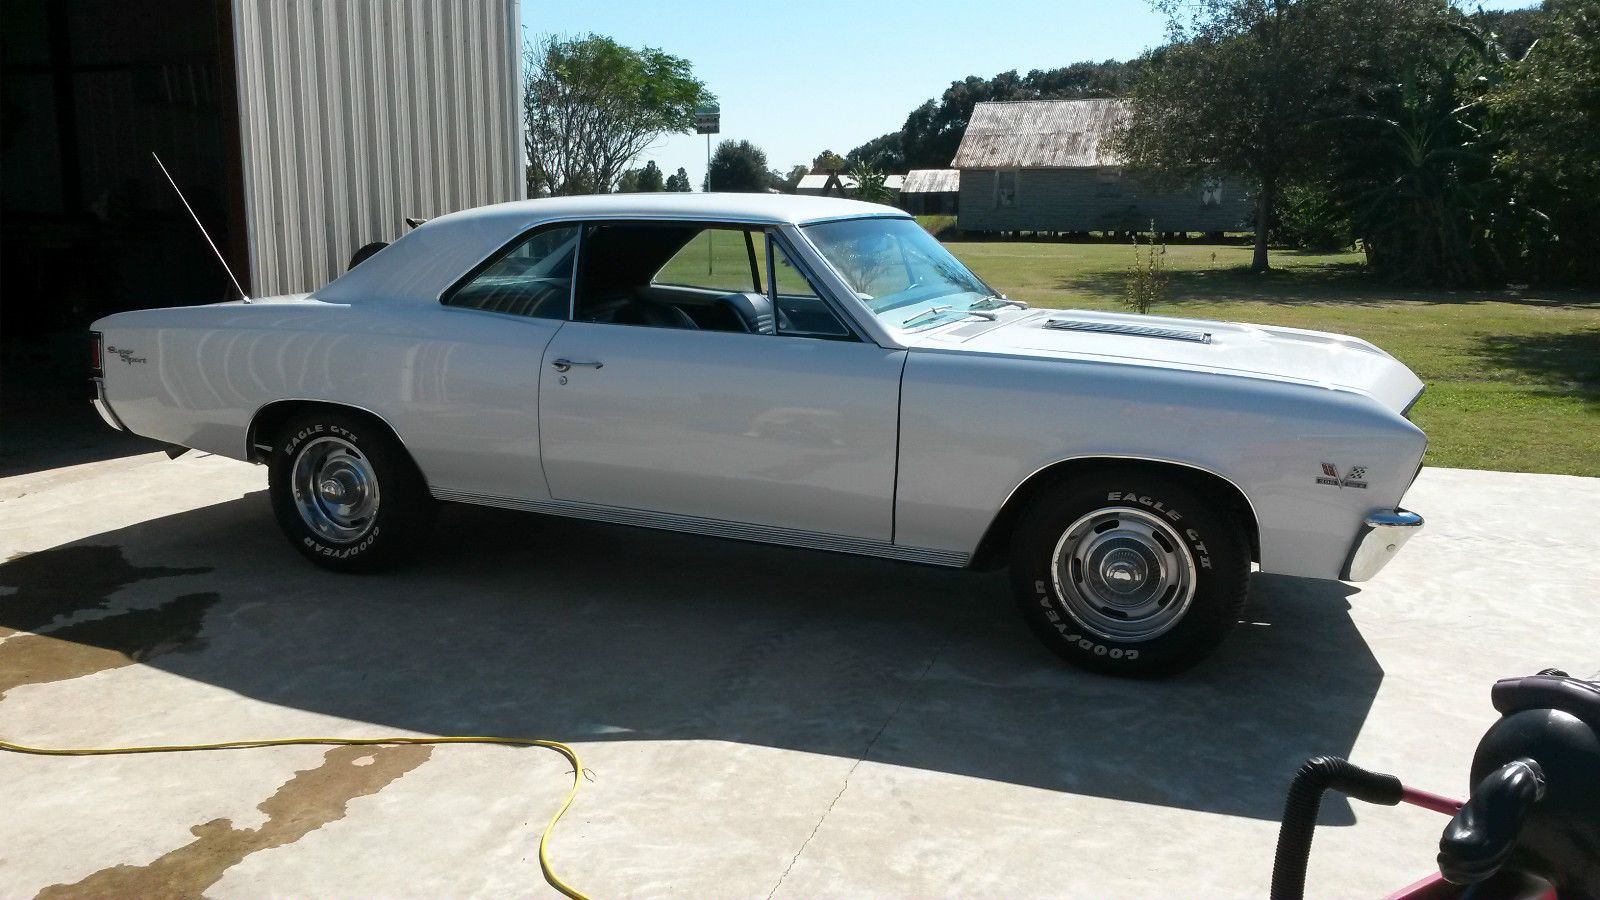 1967 Chevrolet Malibu Project cars for sale, Chevrolet